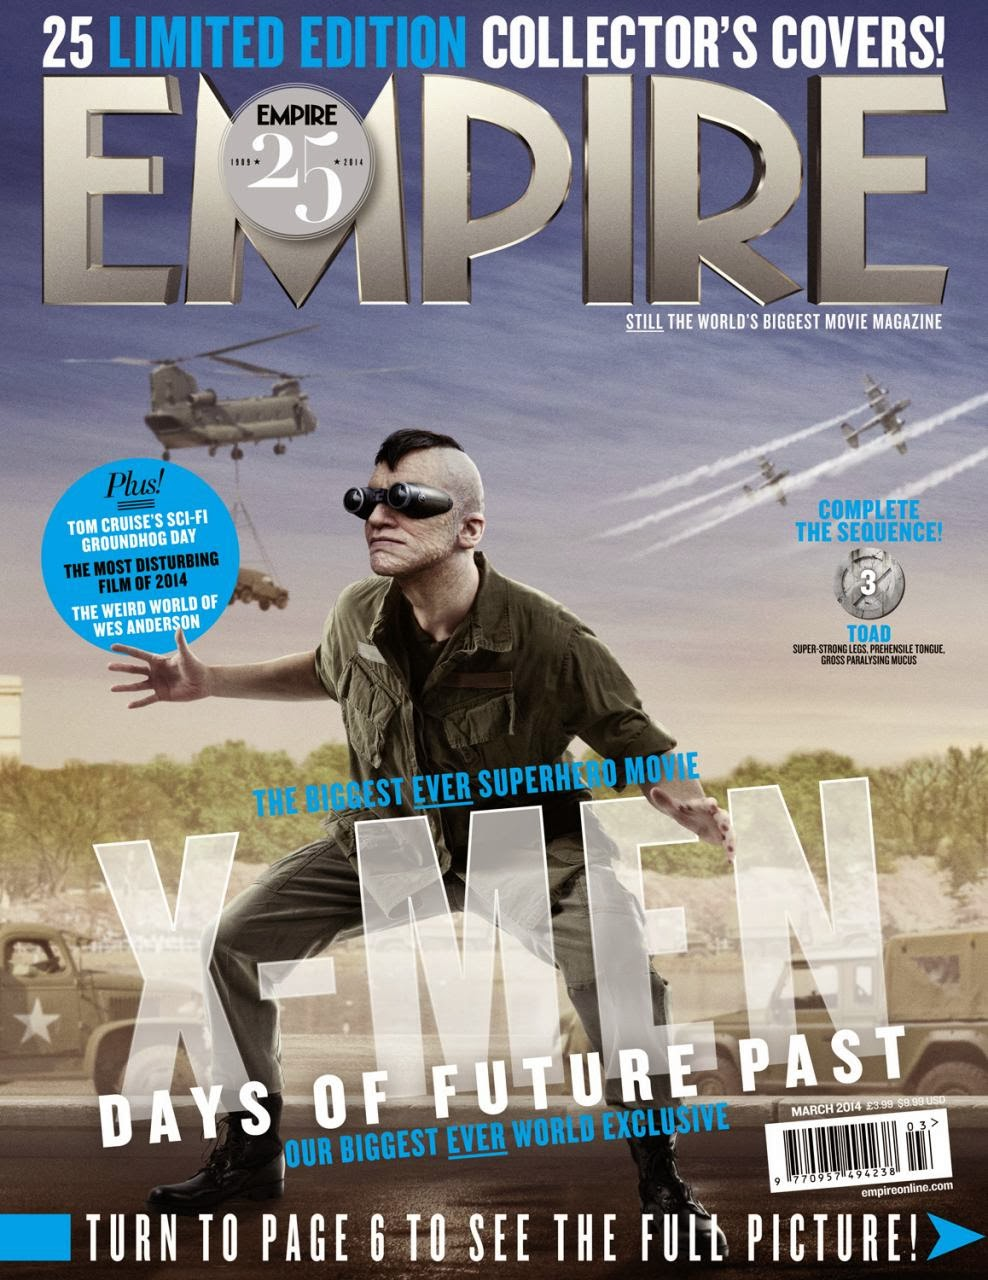 X-MEN DAYS OF FUTURE PAST-Official Poster Banner PROMO EMPIRE COVER-28JANEIRO2014-14